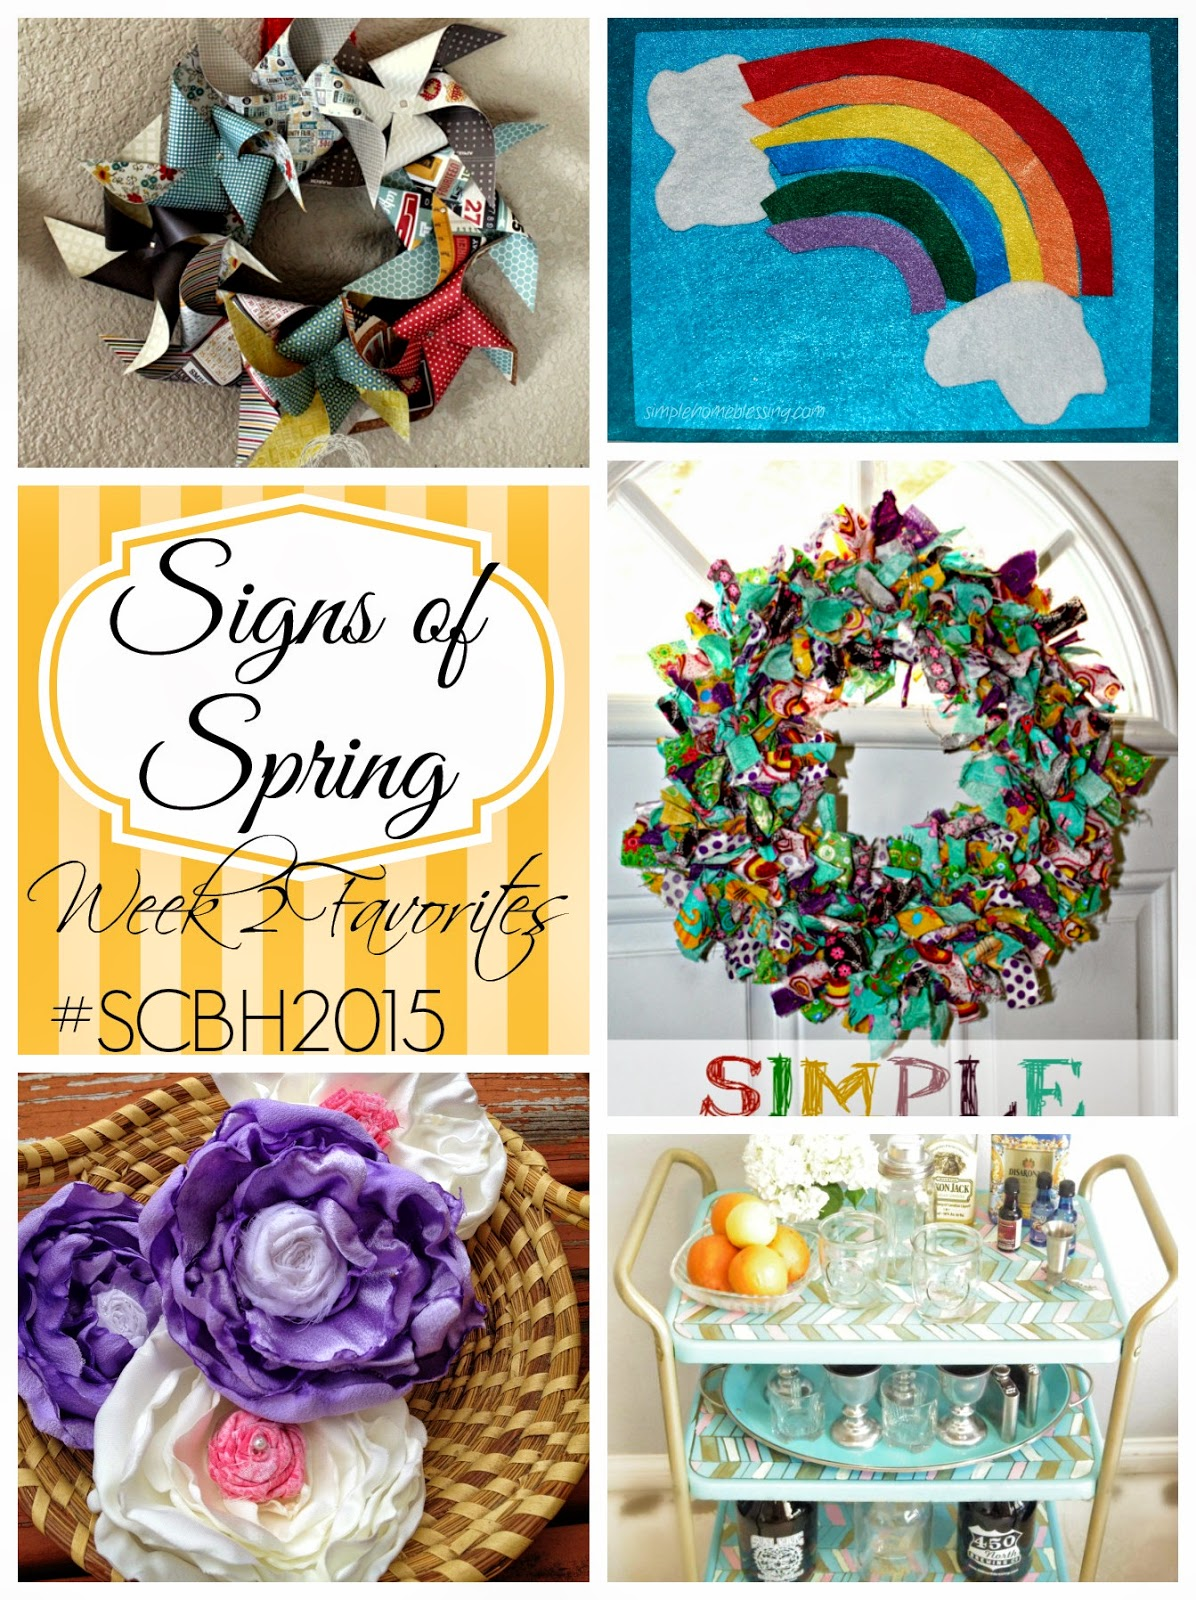 Signs of Spring #2: A round up of favorite projects linked up to the Spring Craft Blog Hop